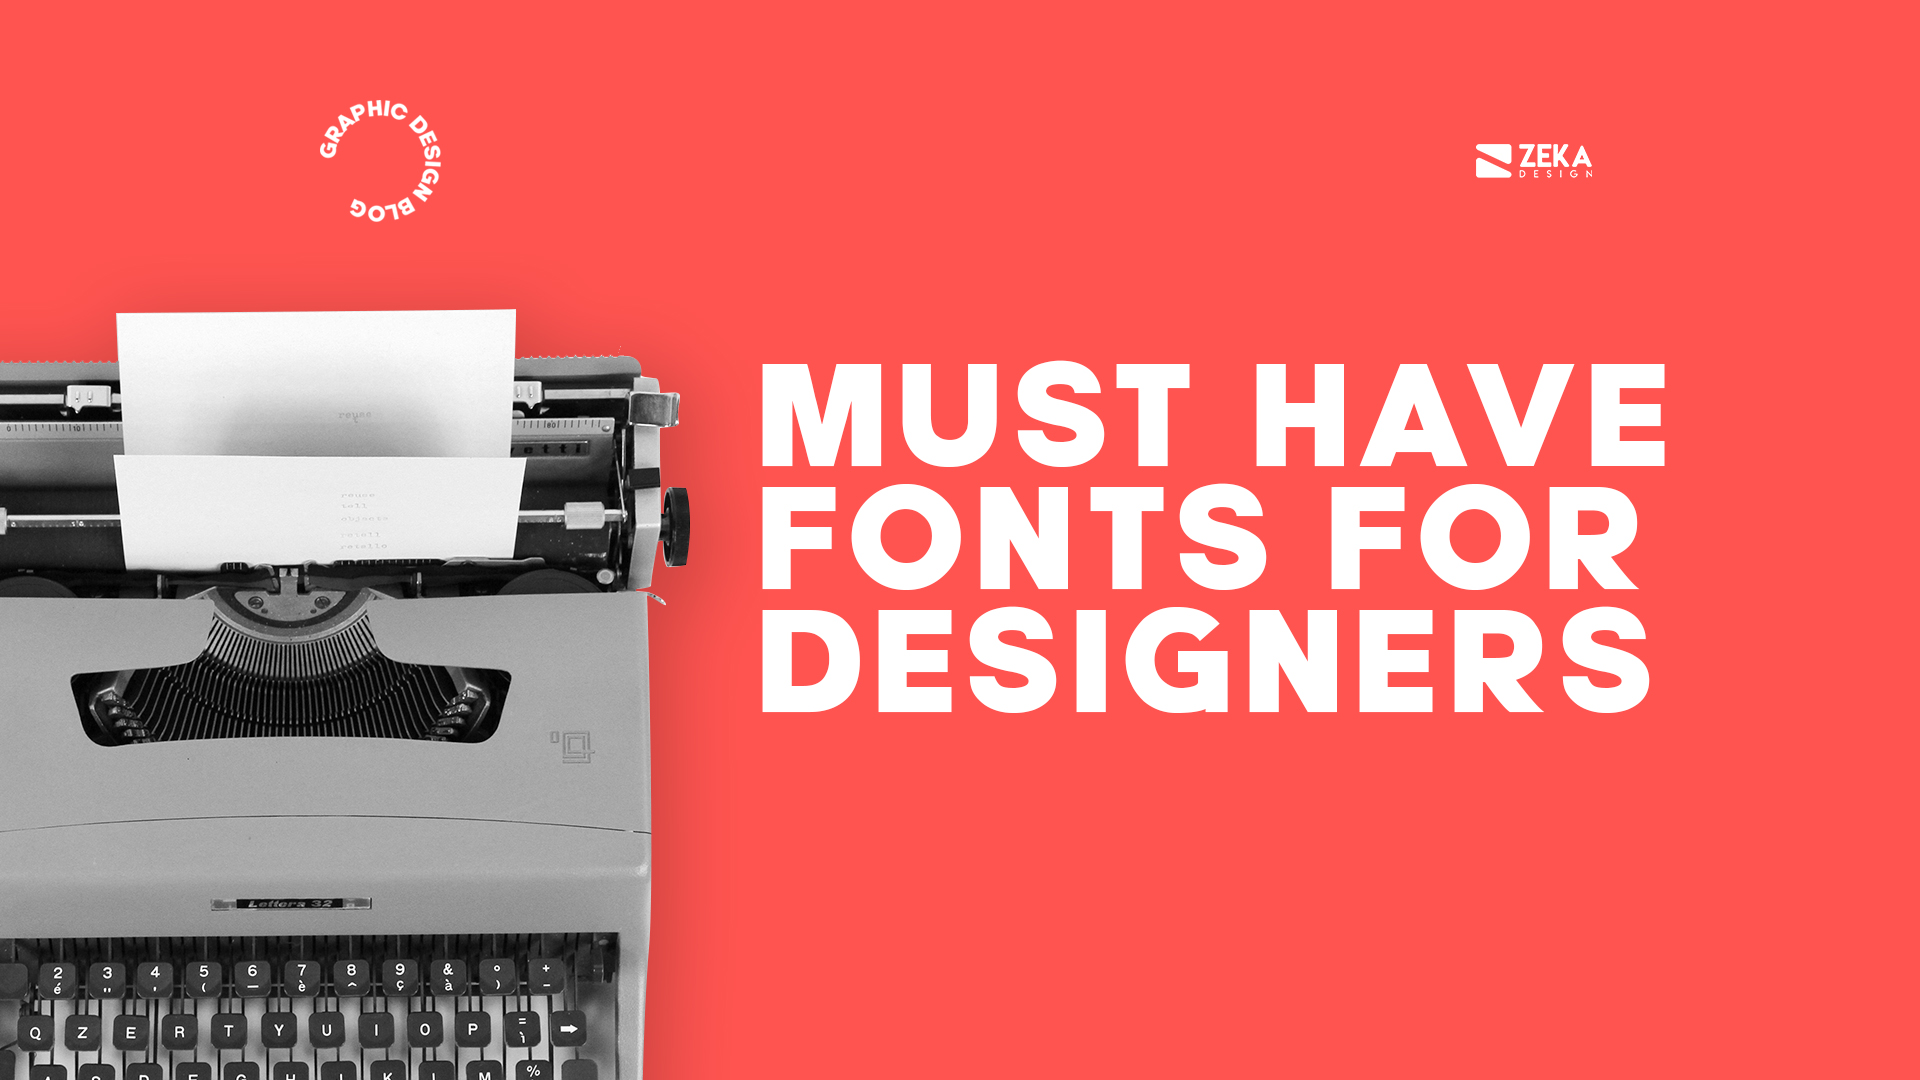 Must have fonts for graphic designers and creatives